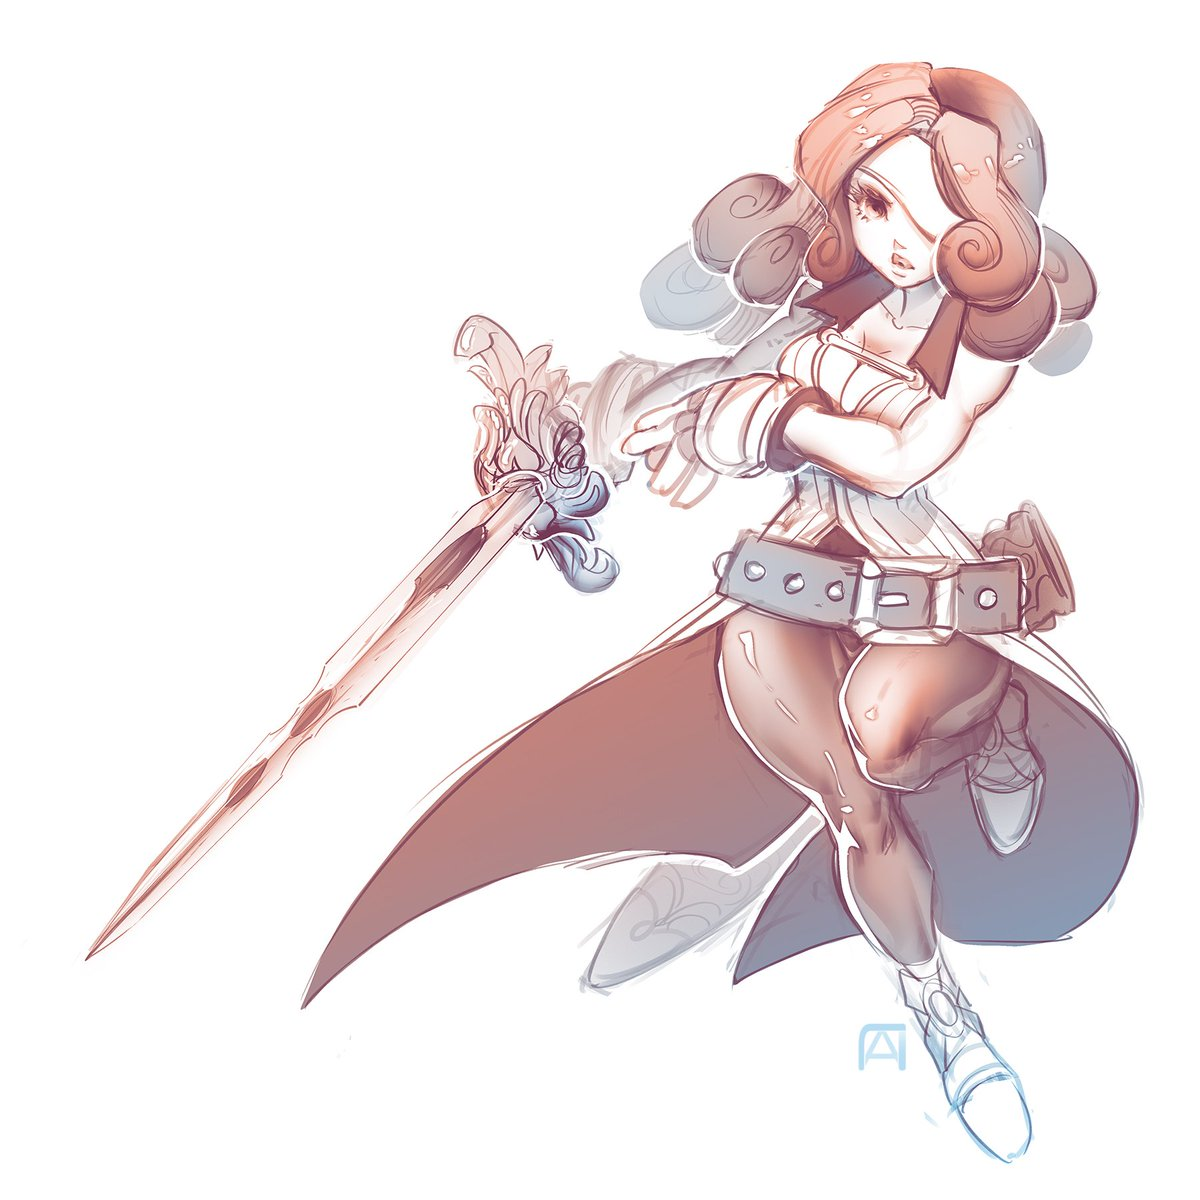 Lpchan On Twitter Sketched A Beatrix From Ff9 3 I Really Want To